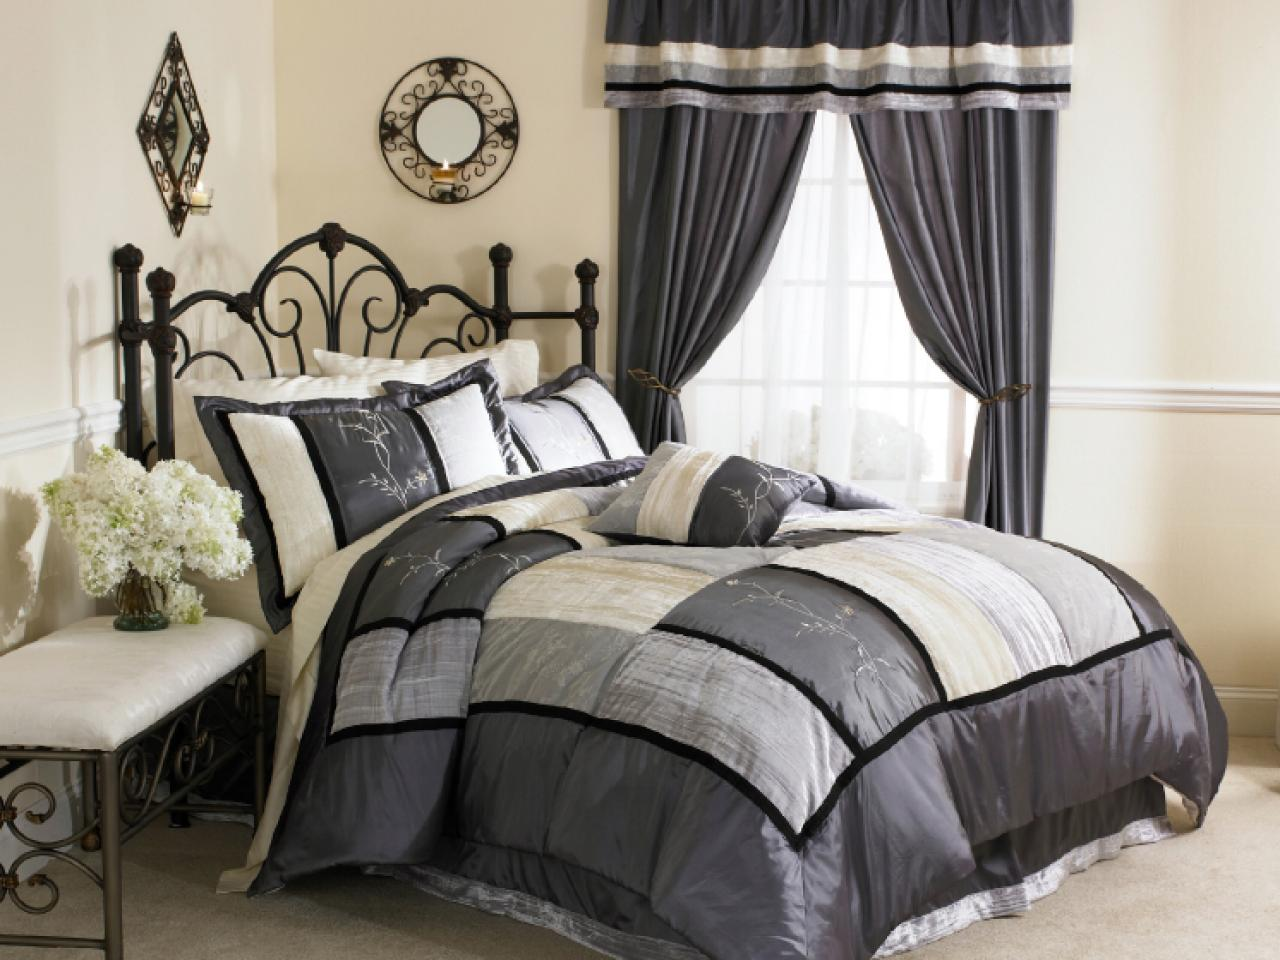 Guide to buying sheets hgtv for Best color bed sheets